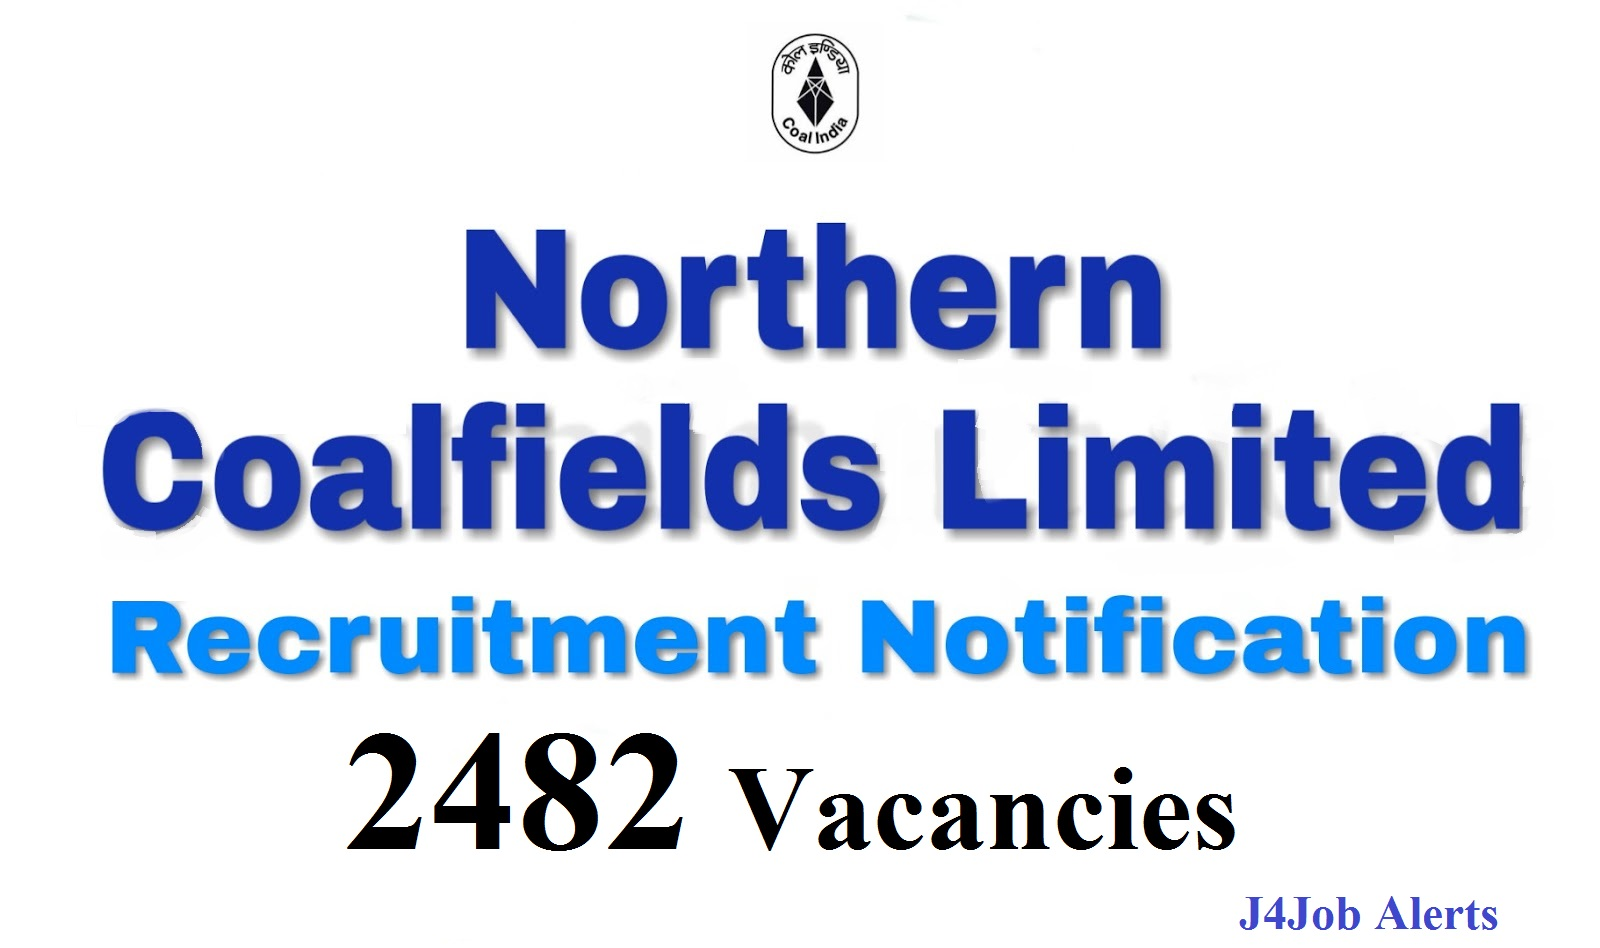 Northern Coalfields Limited Jobs 2019 : Apply Online for